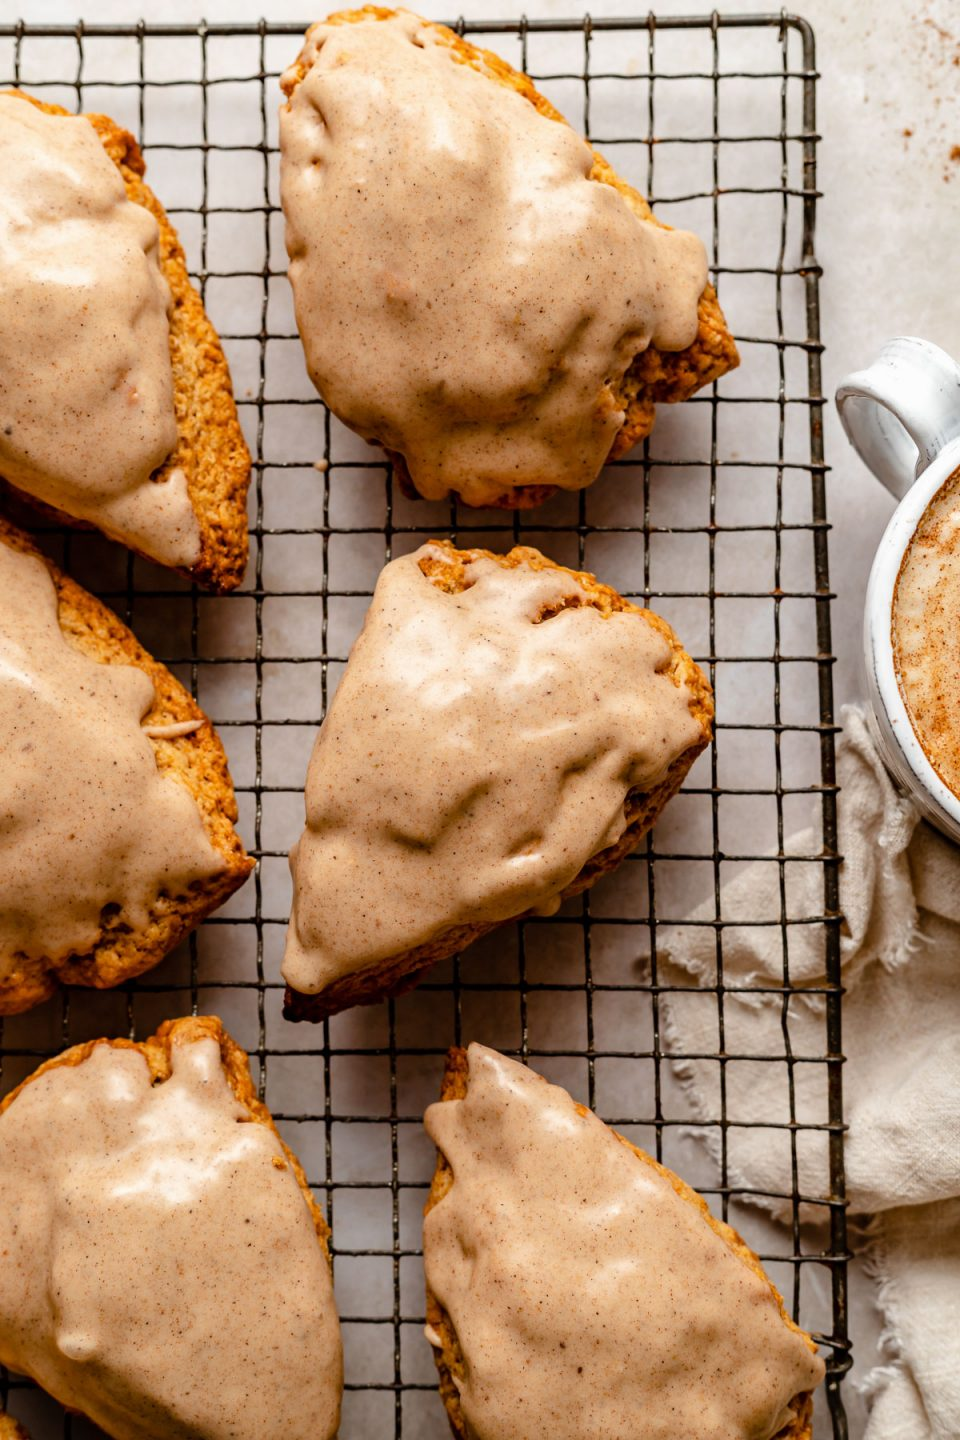 Glazed Chai Scones sit atop a metal baking rack. Next to the rack are a beige linen napkin, a whole cinnamon stick, & a mug with a chai latte in it.